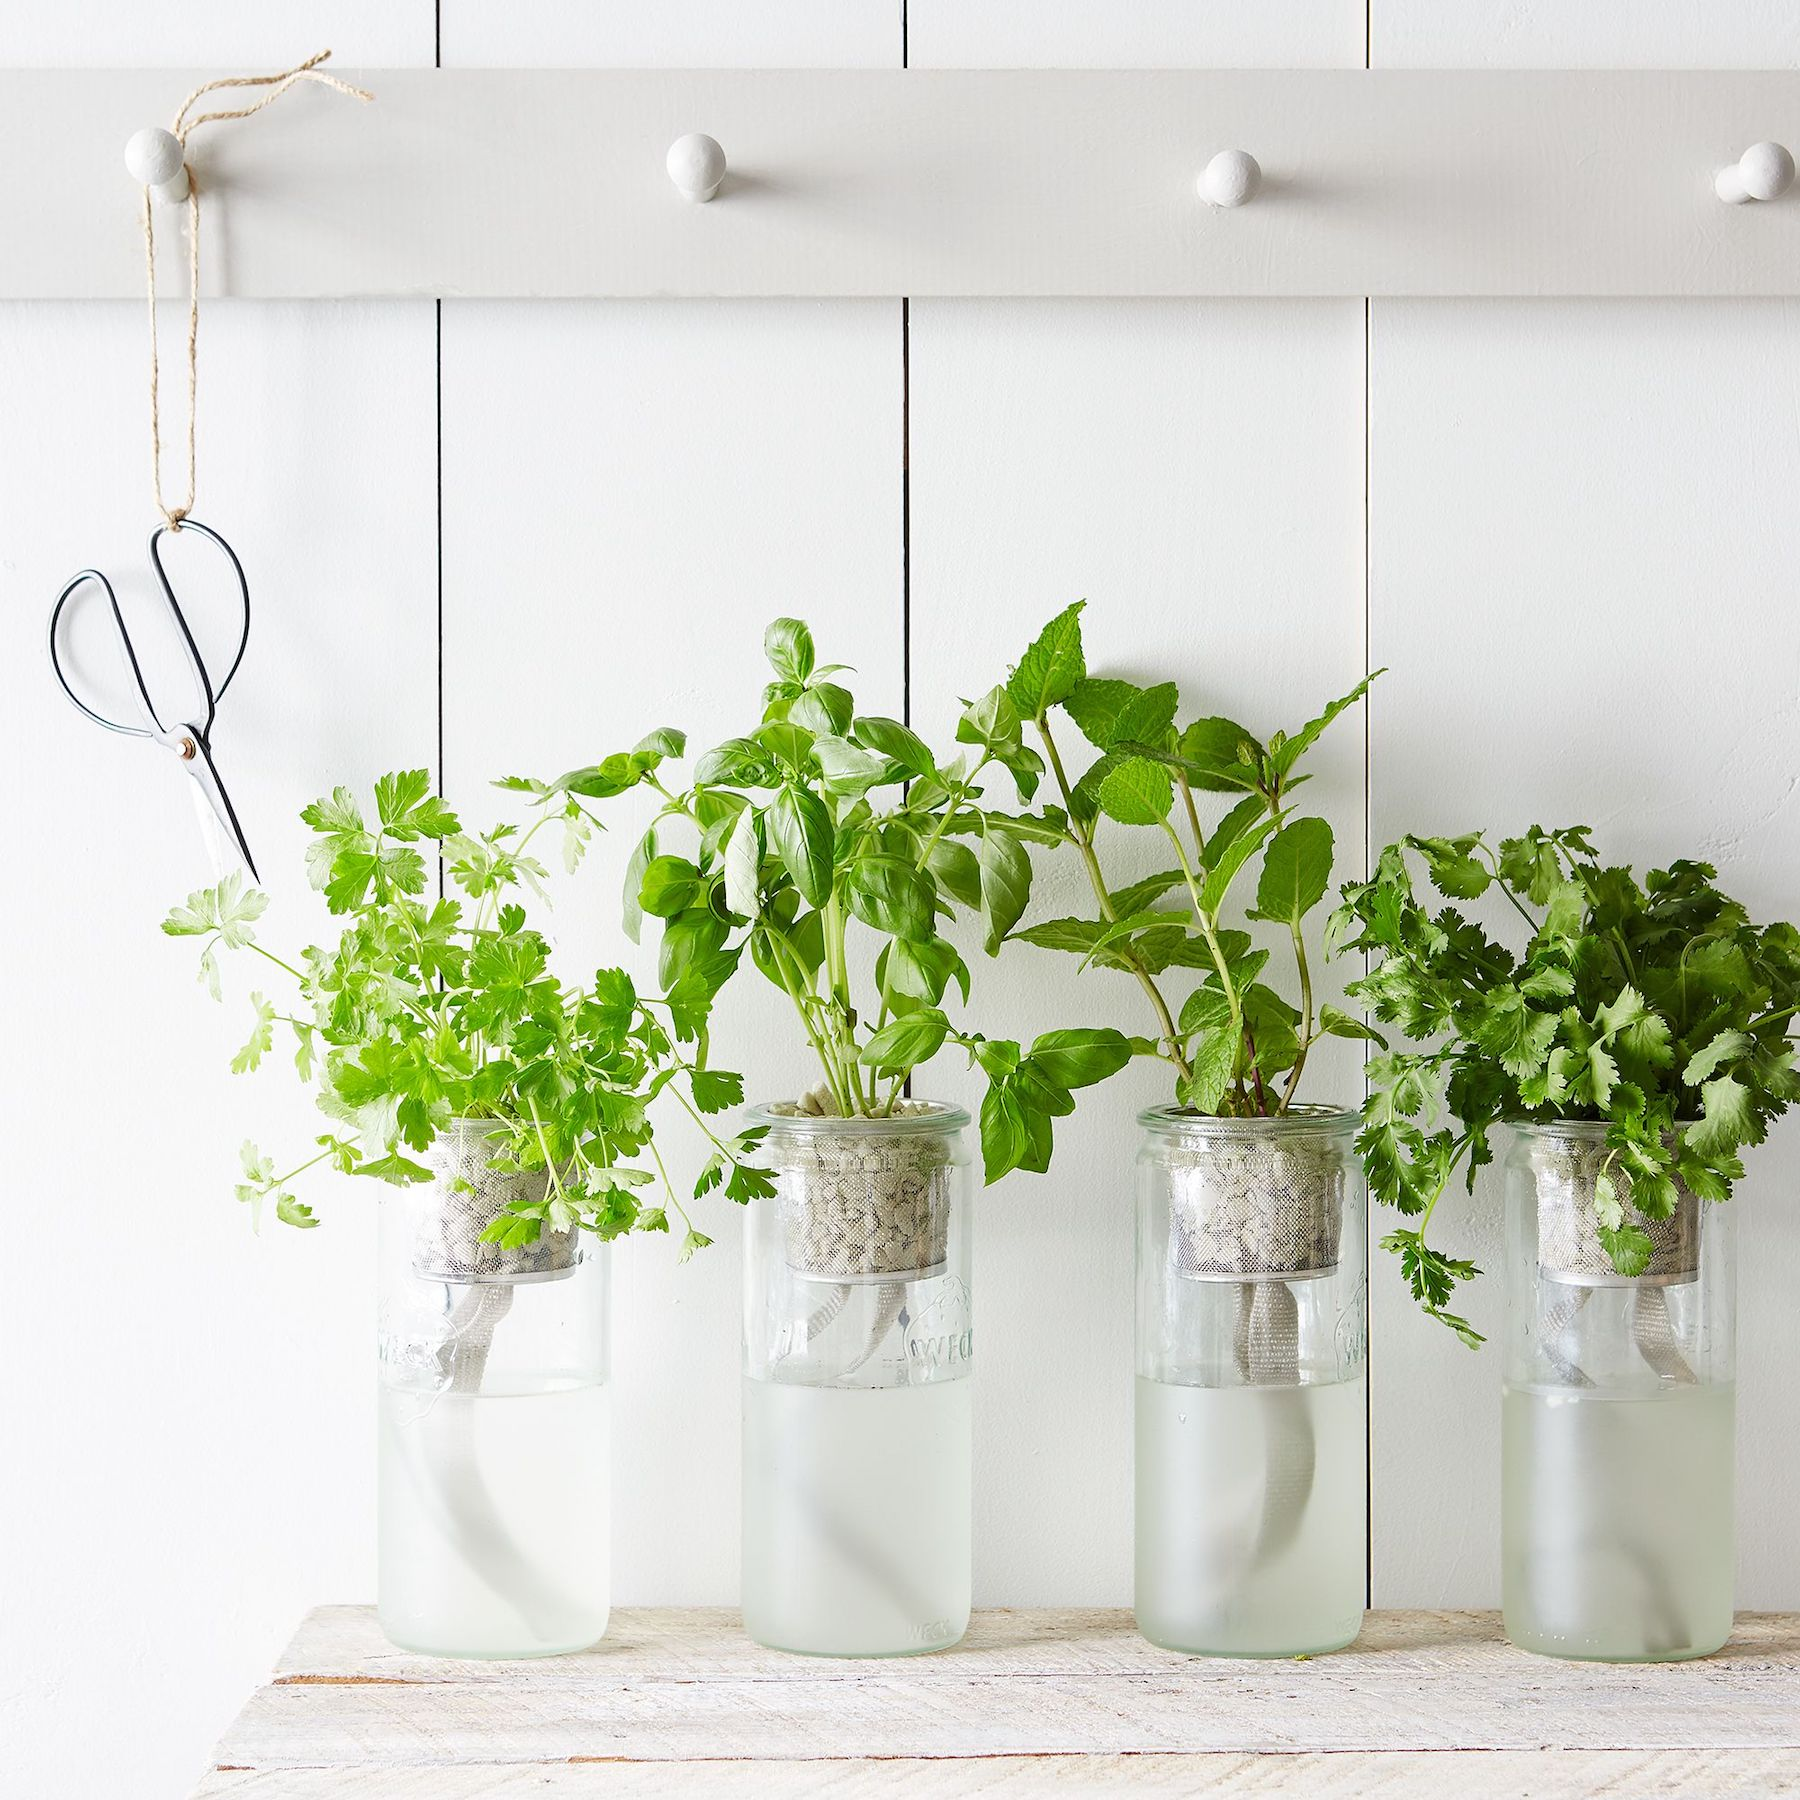 Everything You Need to Start a Low-Maintenance Windowsill Herb Garden